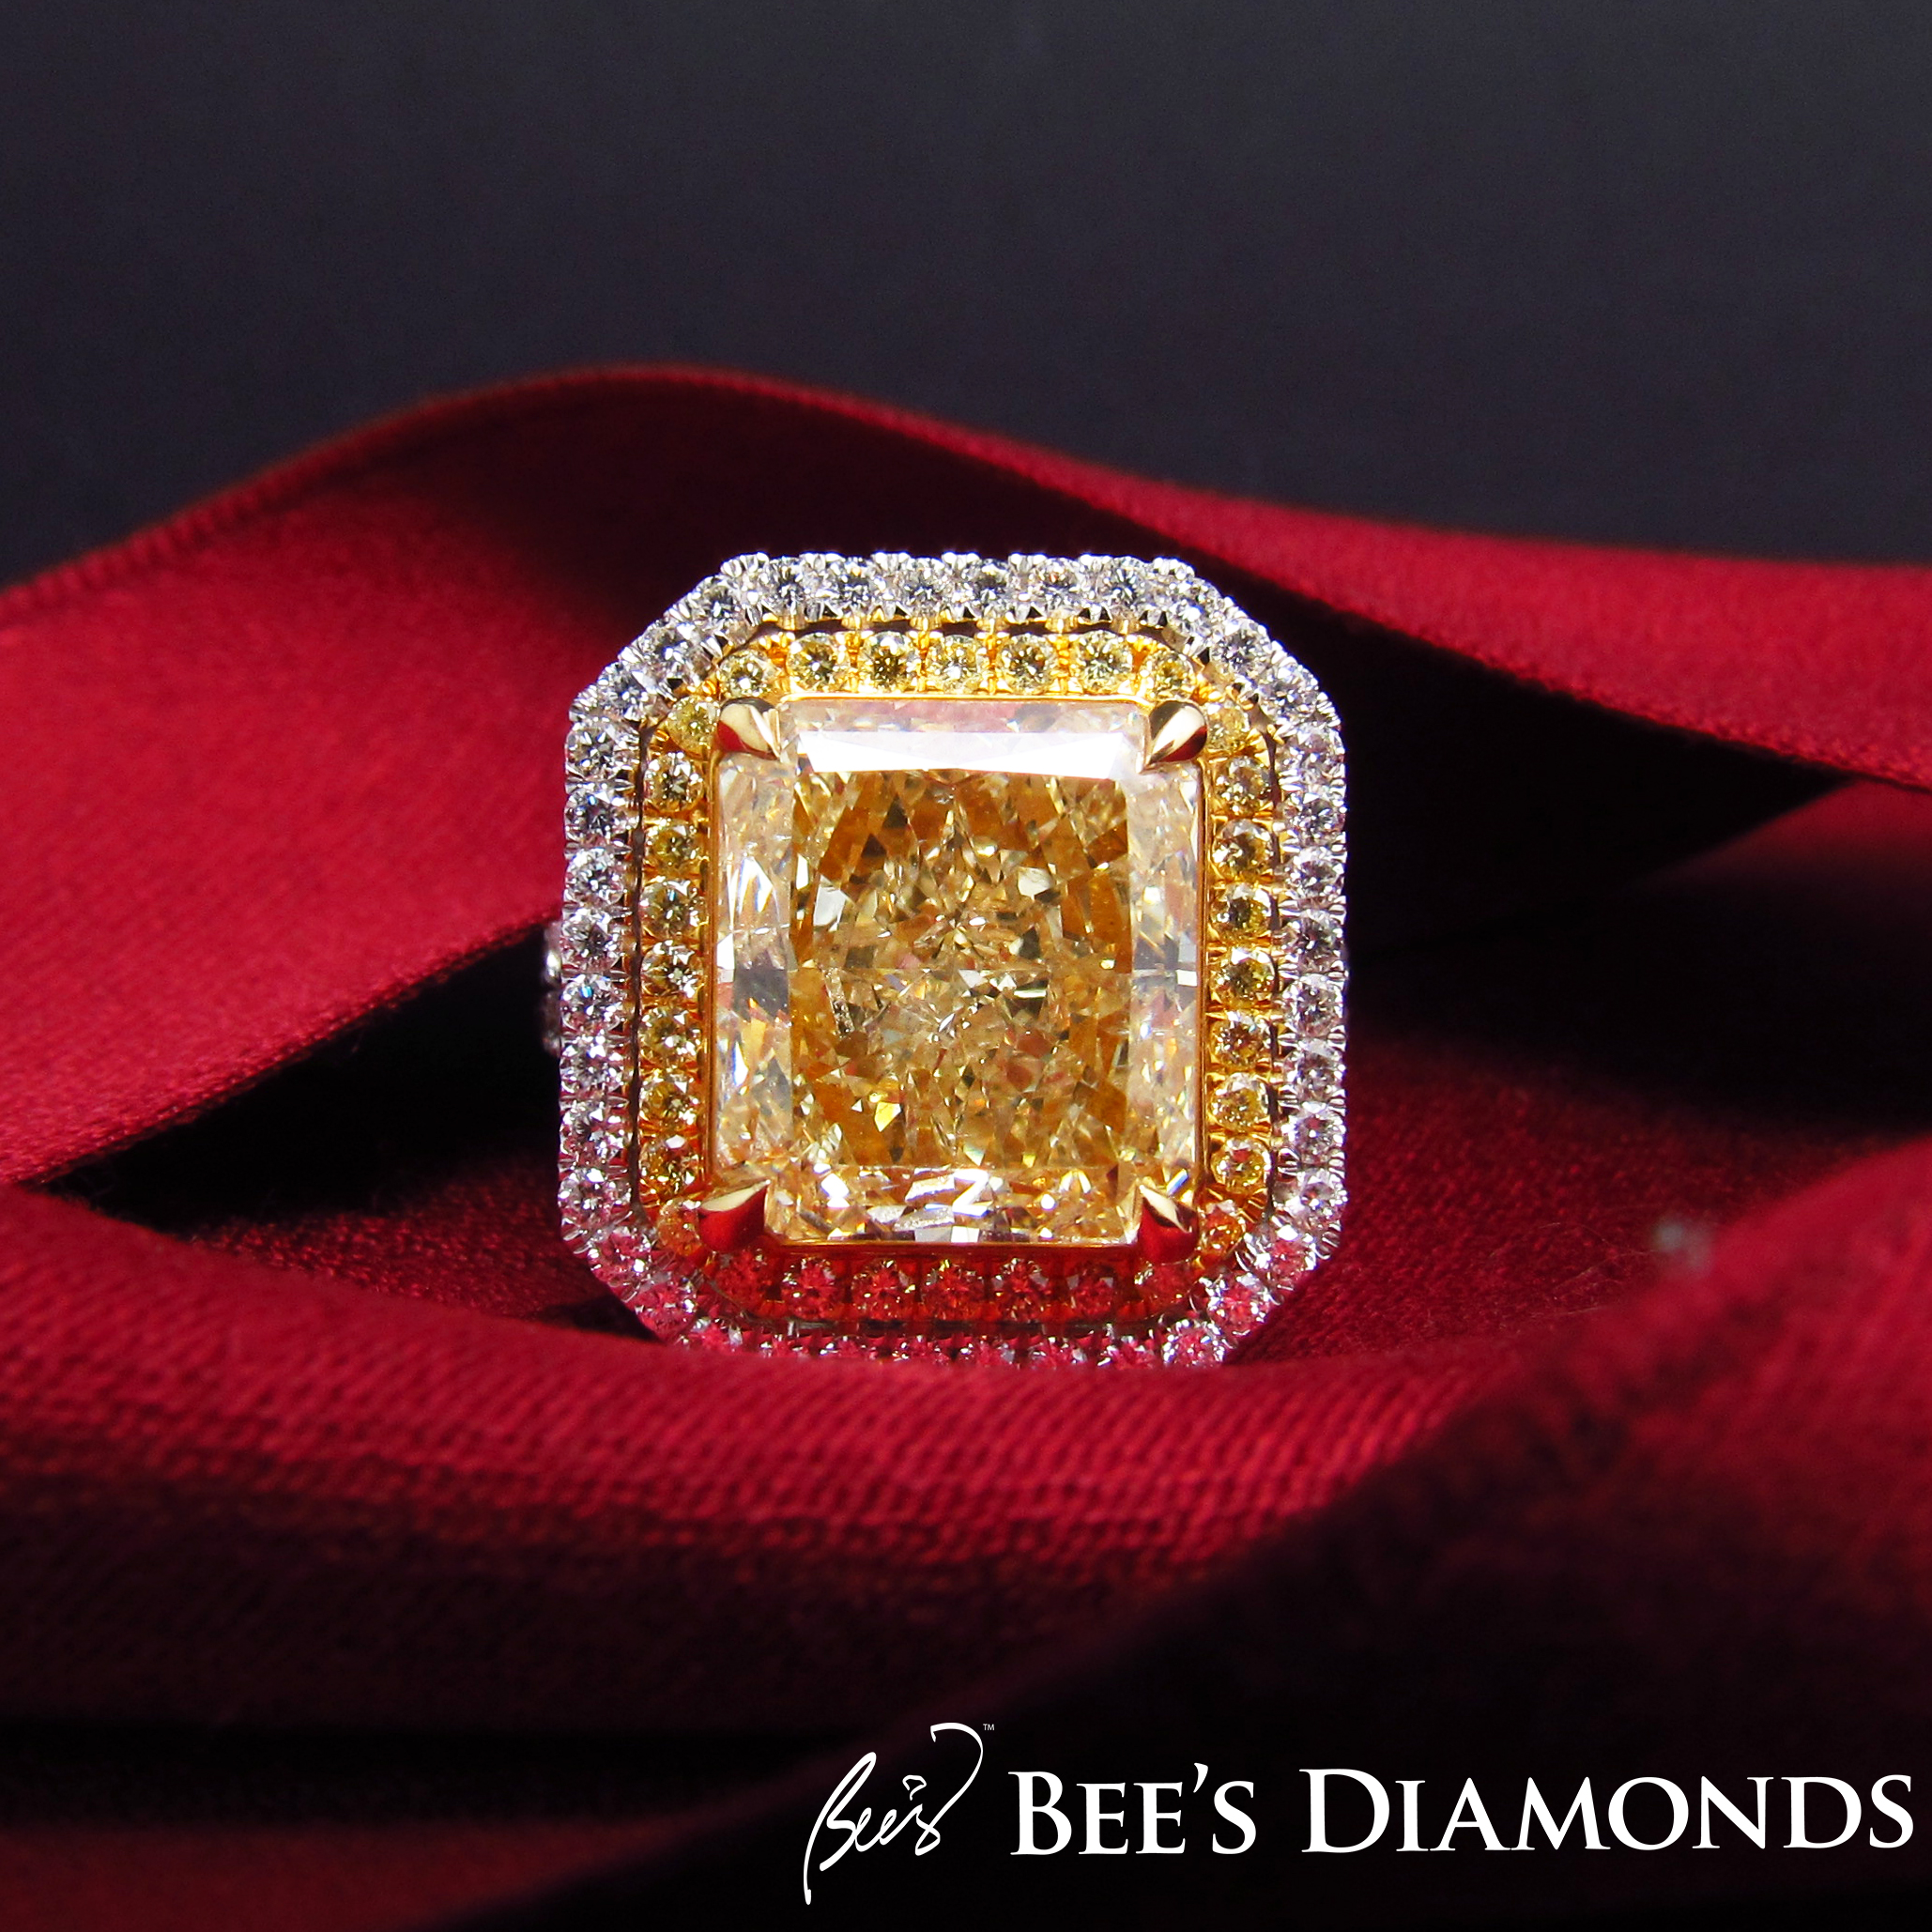 Large radiant cut, fancy yellow diamond ring | Bee's Diamonds